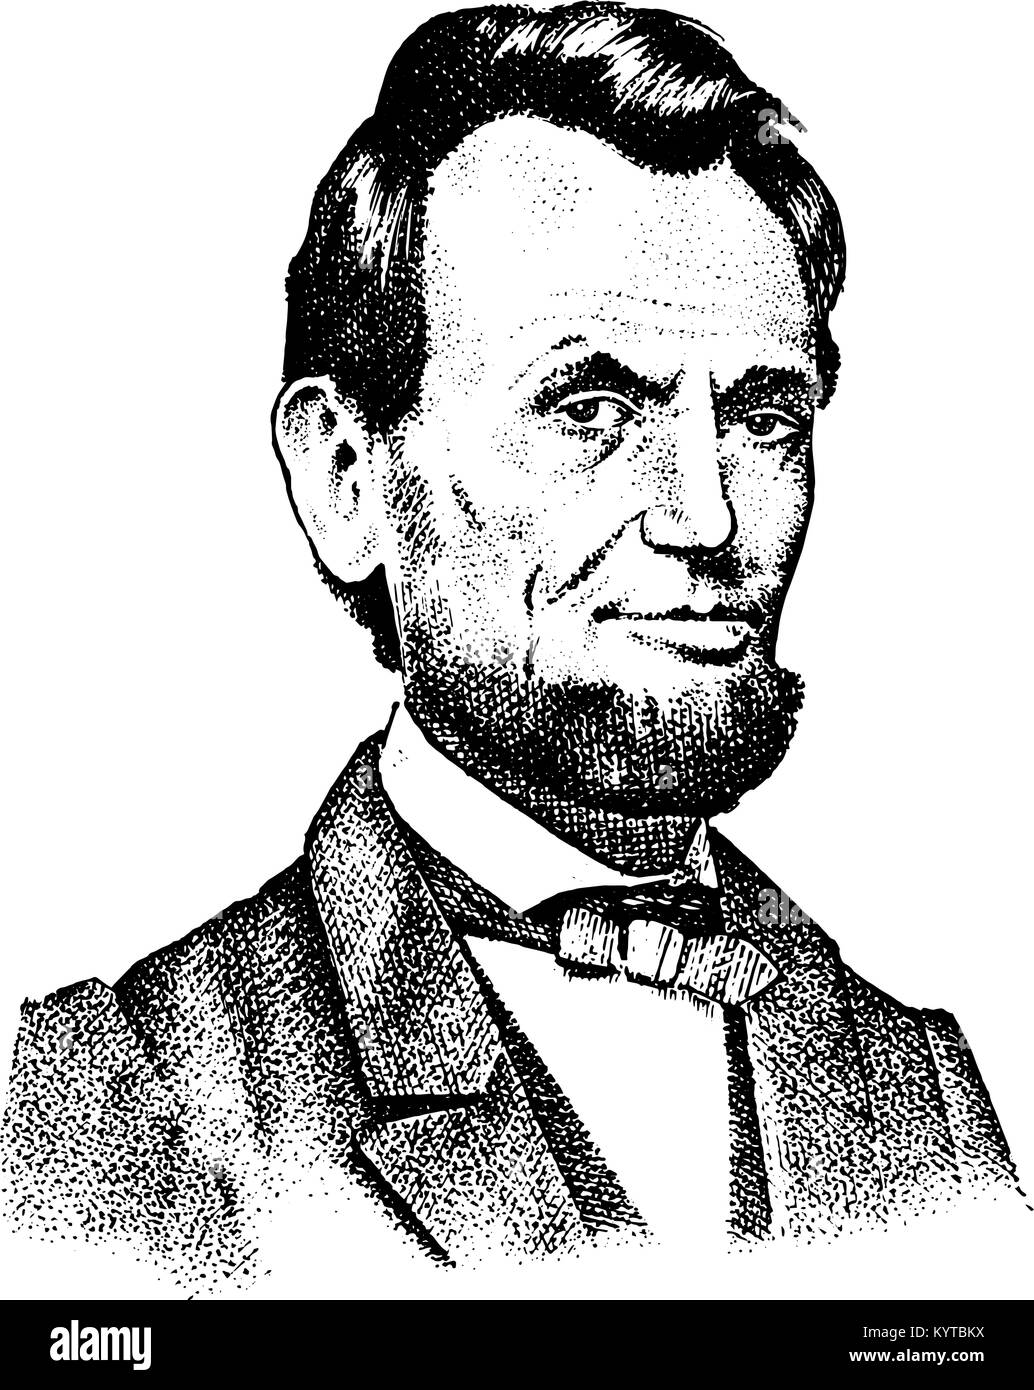 Abraham Lincoln Cartoon Stock Vector Images Alamy